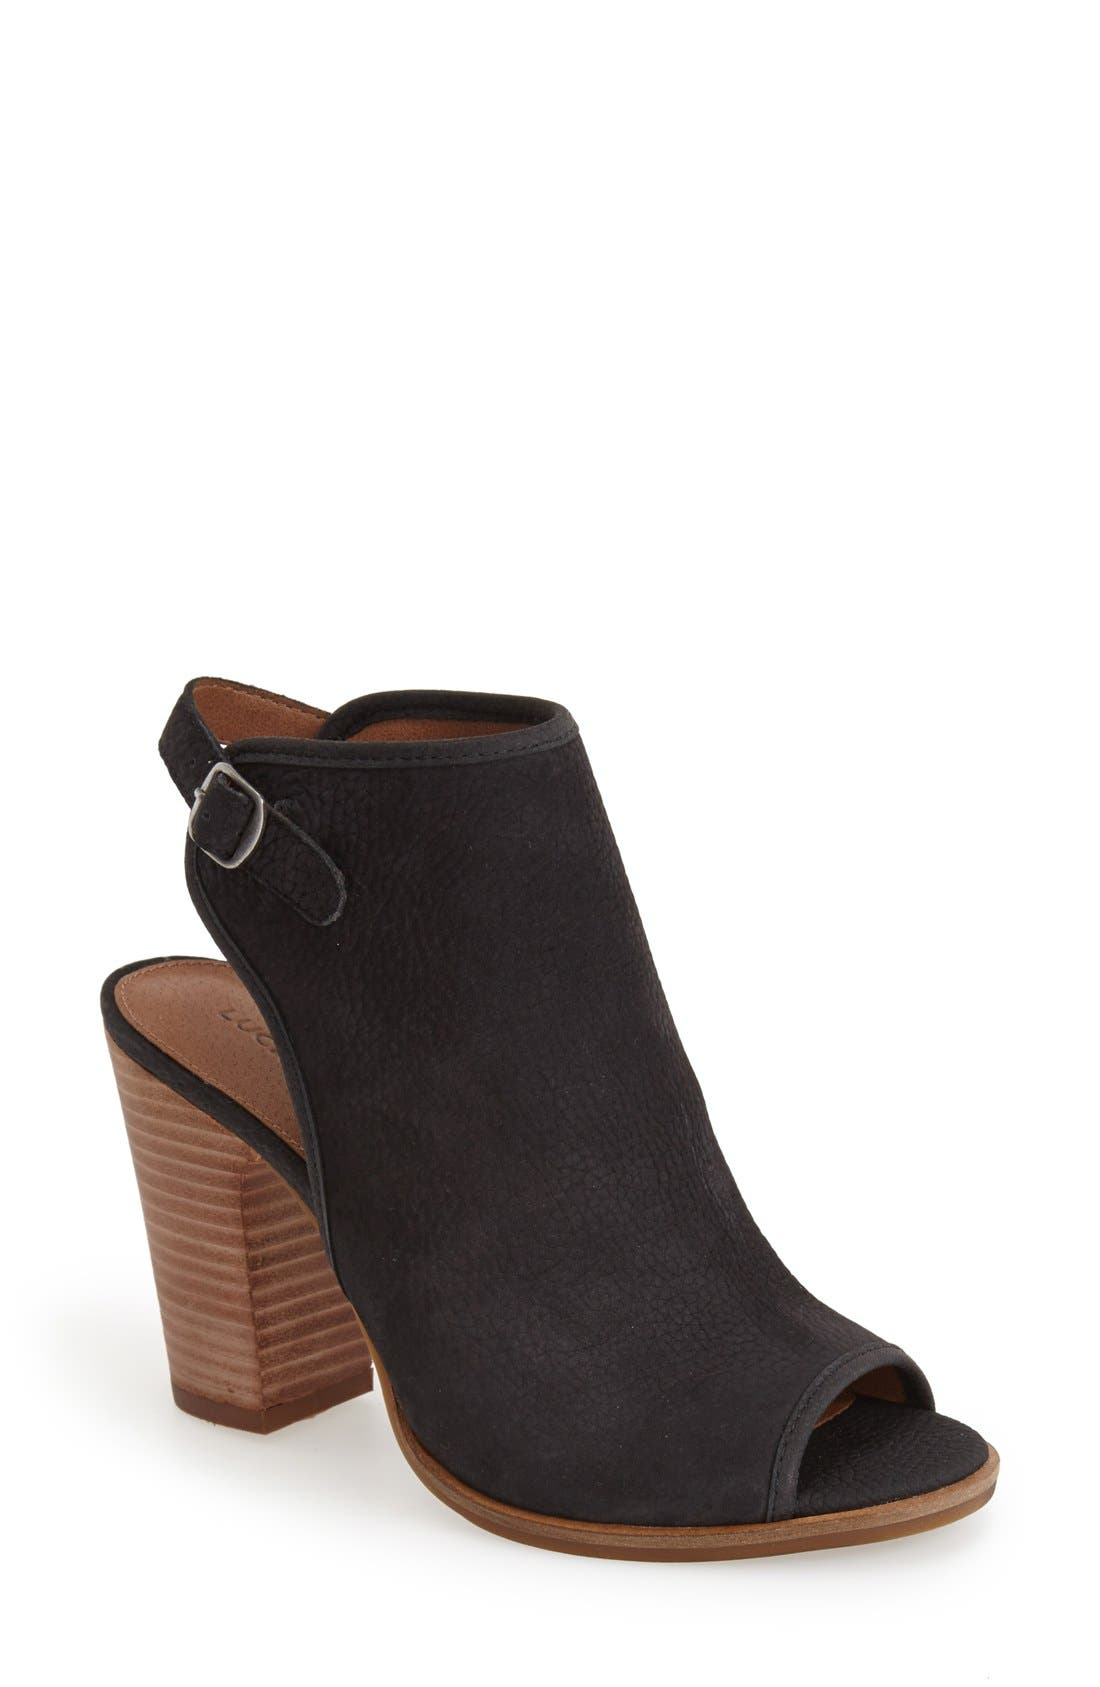 Alternate Image 1 Selected - Lucky Brand 'Lisza' Open Toe Bootie (Women)